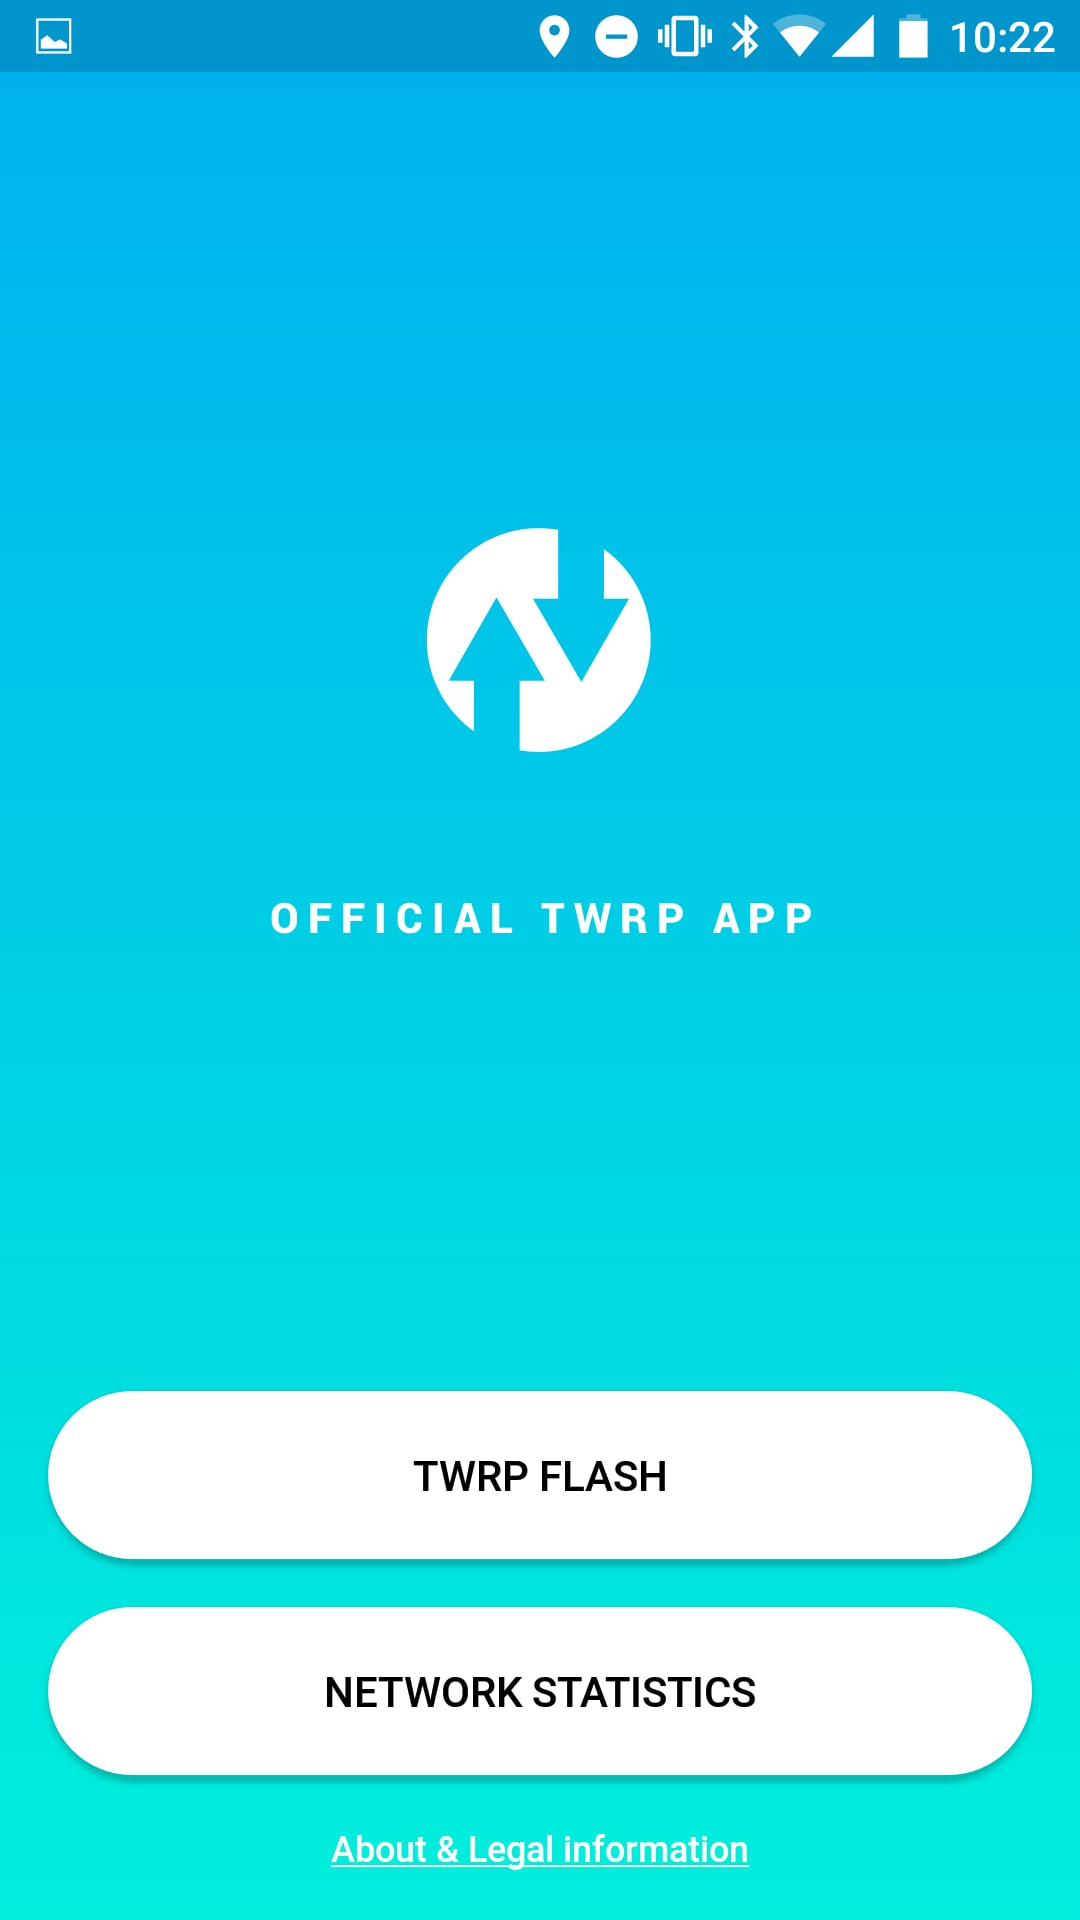 official-twrp-app-1